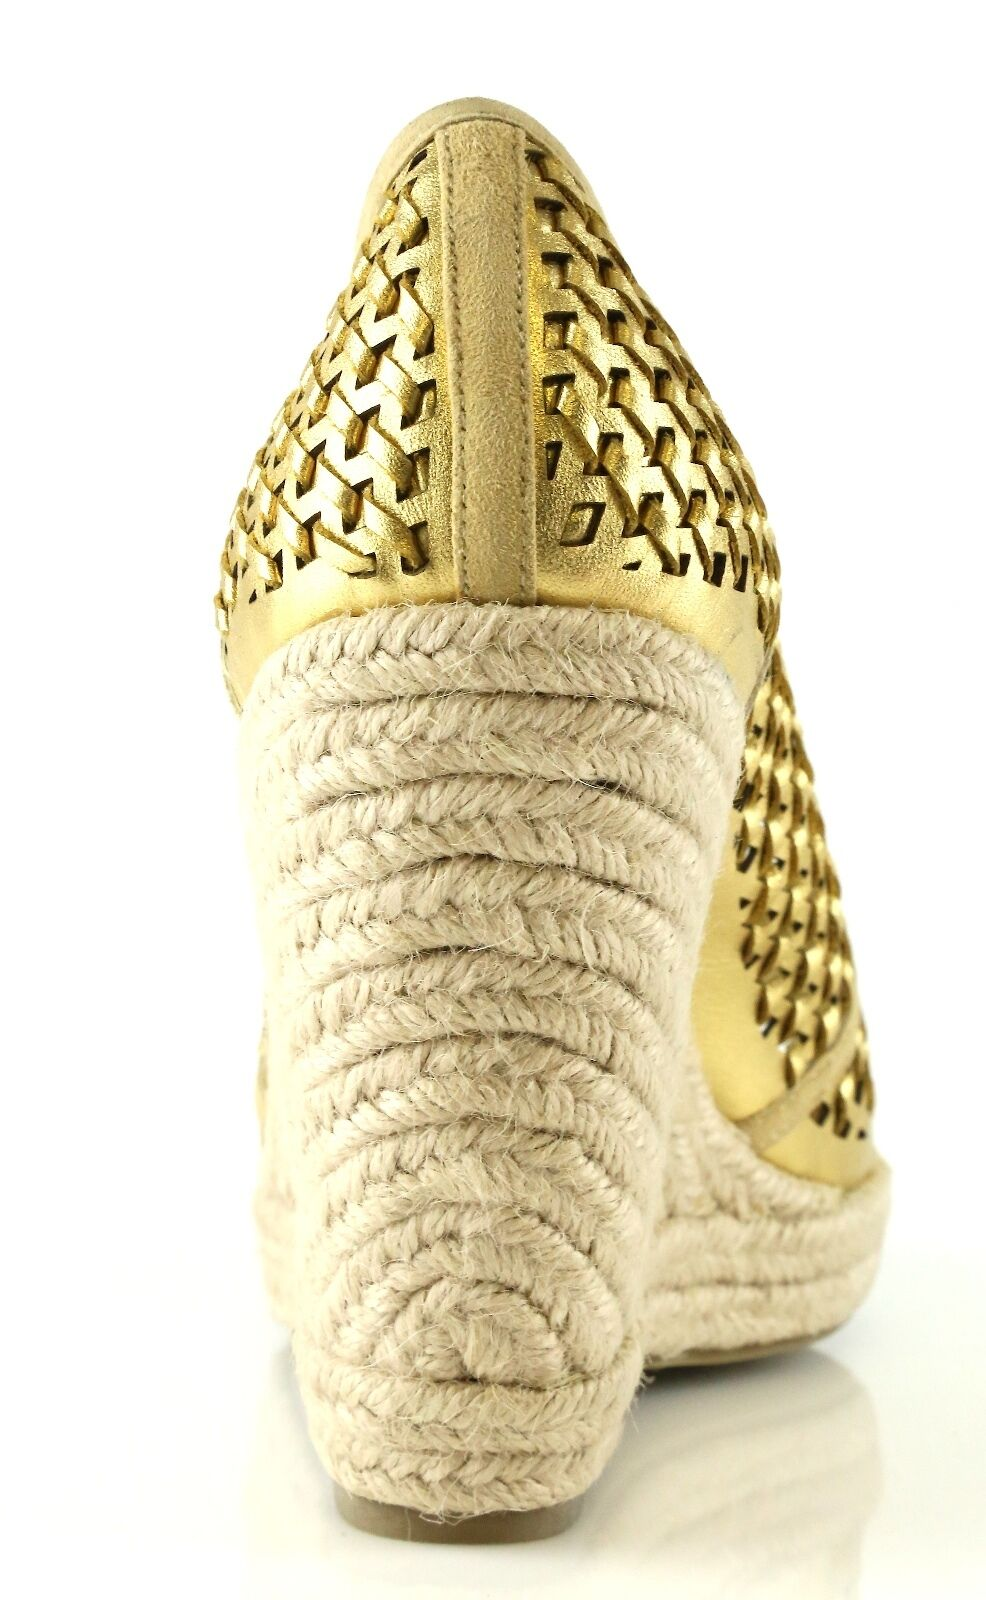 Juicy Couture KINDER Gold Woven 7023 Distressed Leather Wedge Sandals 7023 Woven Size 7.5 M 4a2a8b